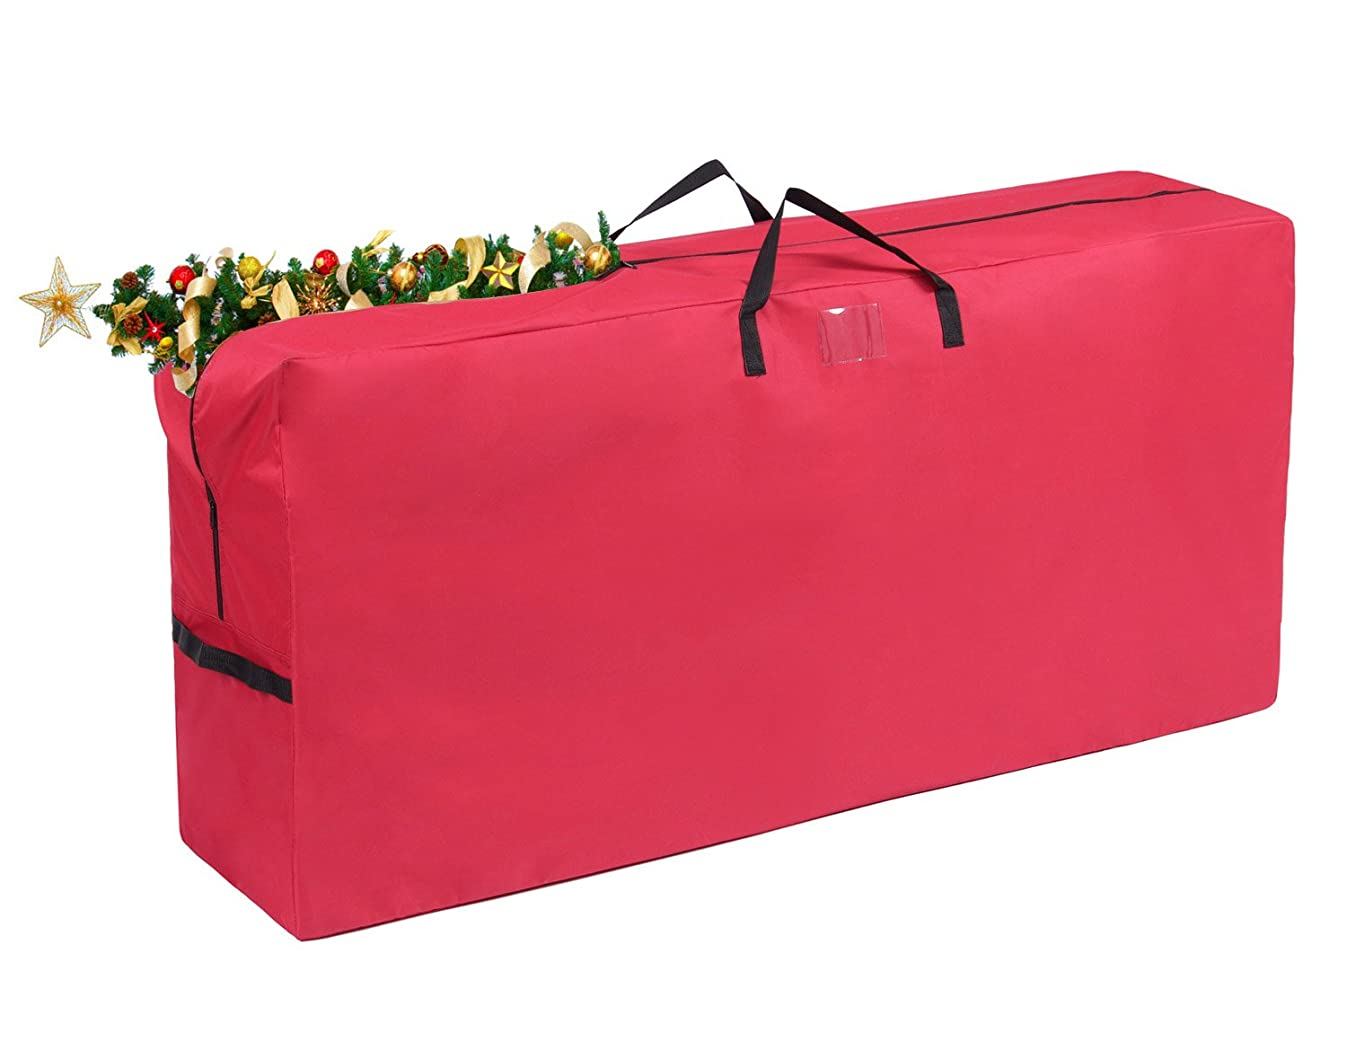 Vencer Heavy Duty 600D Oxford Christmas Tree Storage Bag Fit Upto 9 Foot Artificial Tree Holiday Red Extra Large Dimensions 65